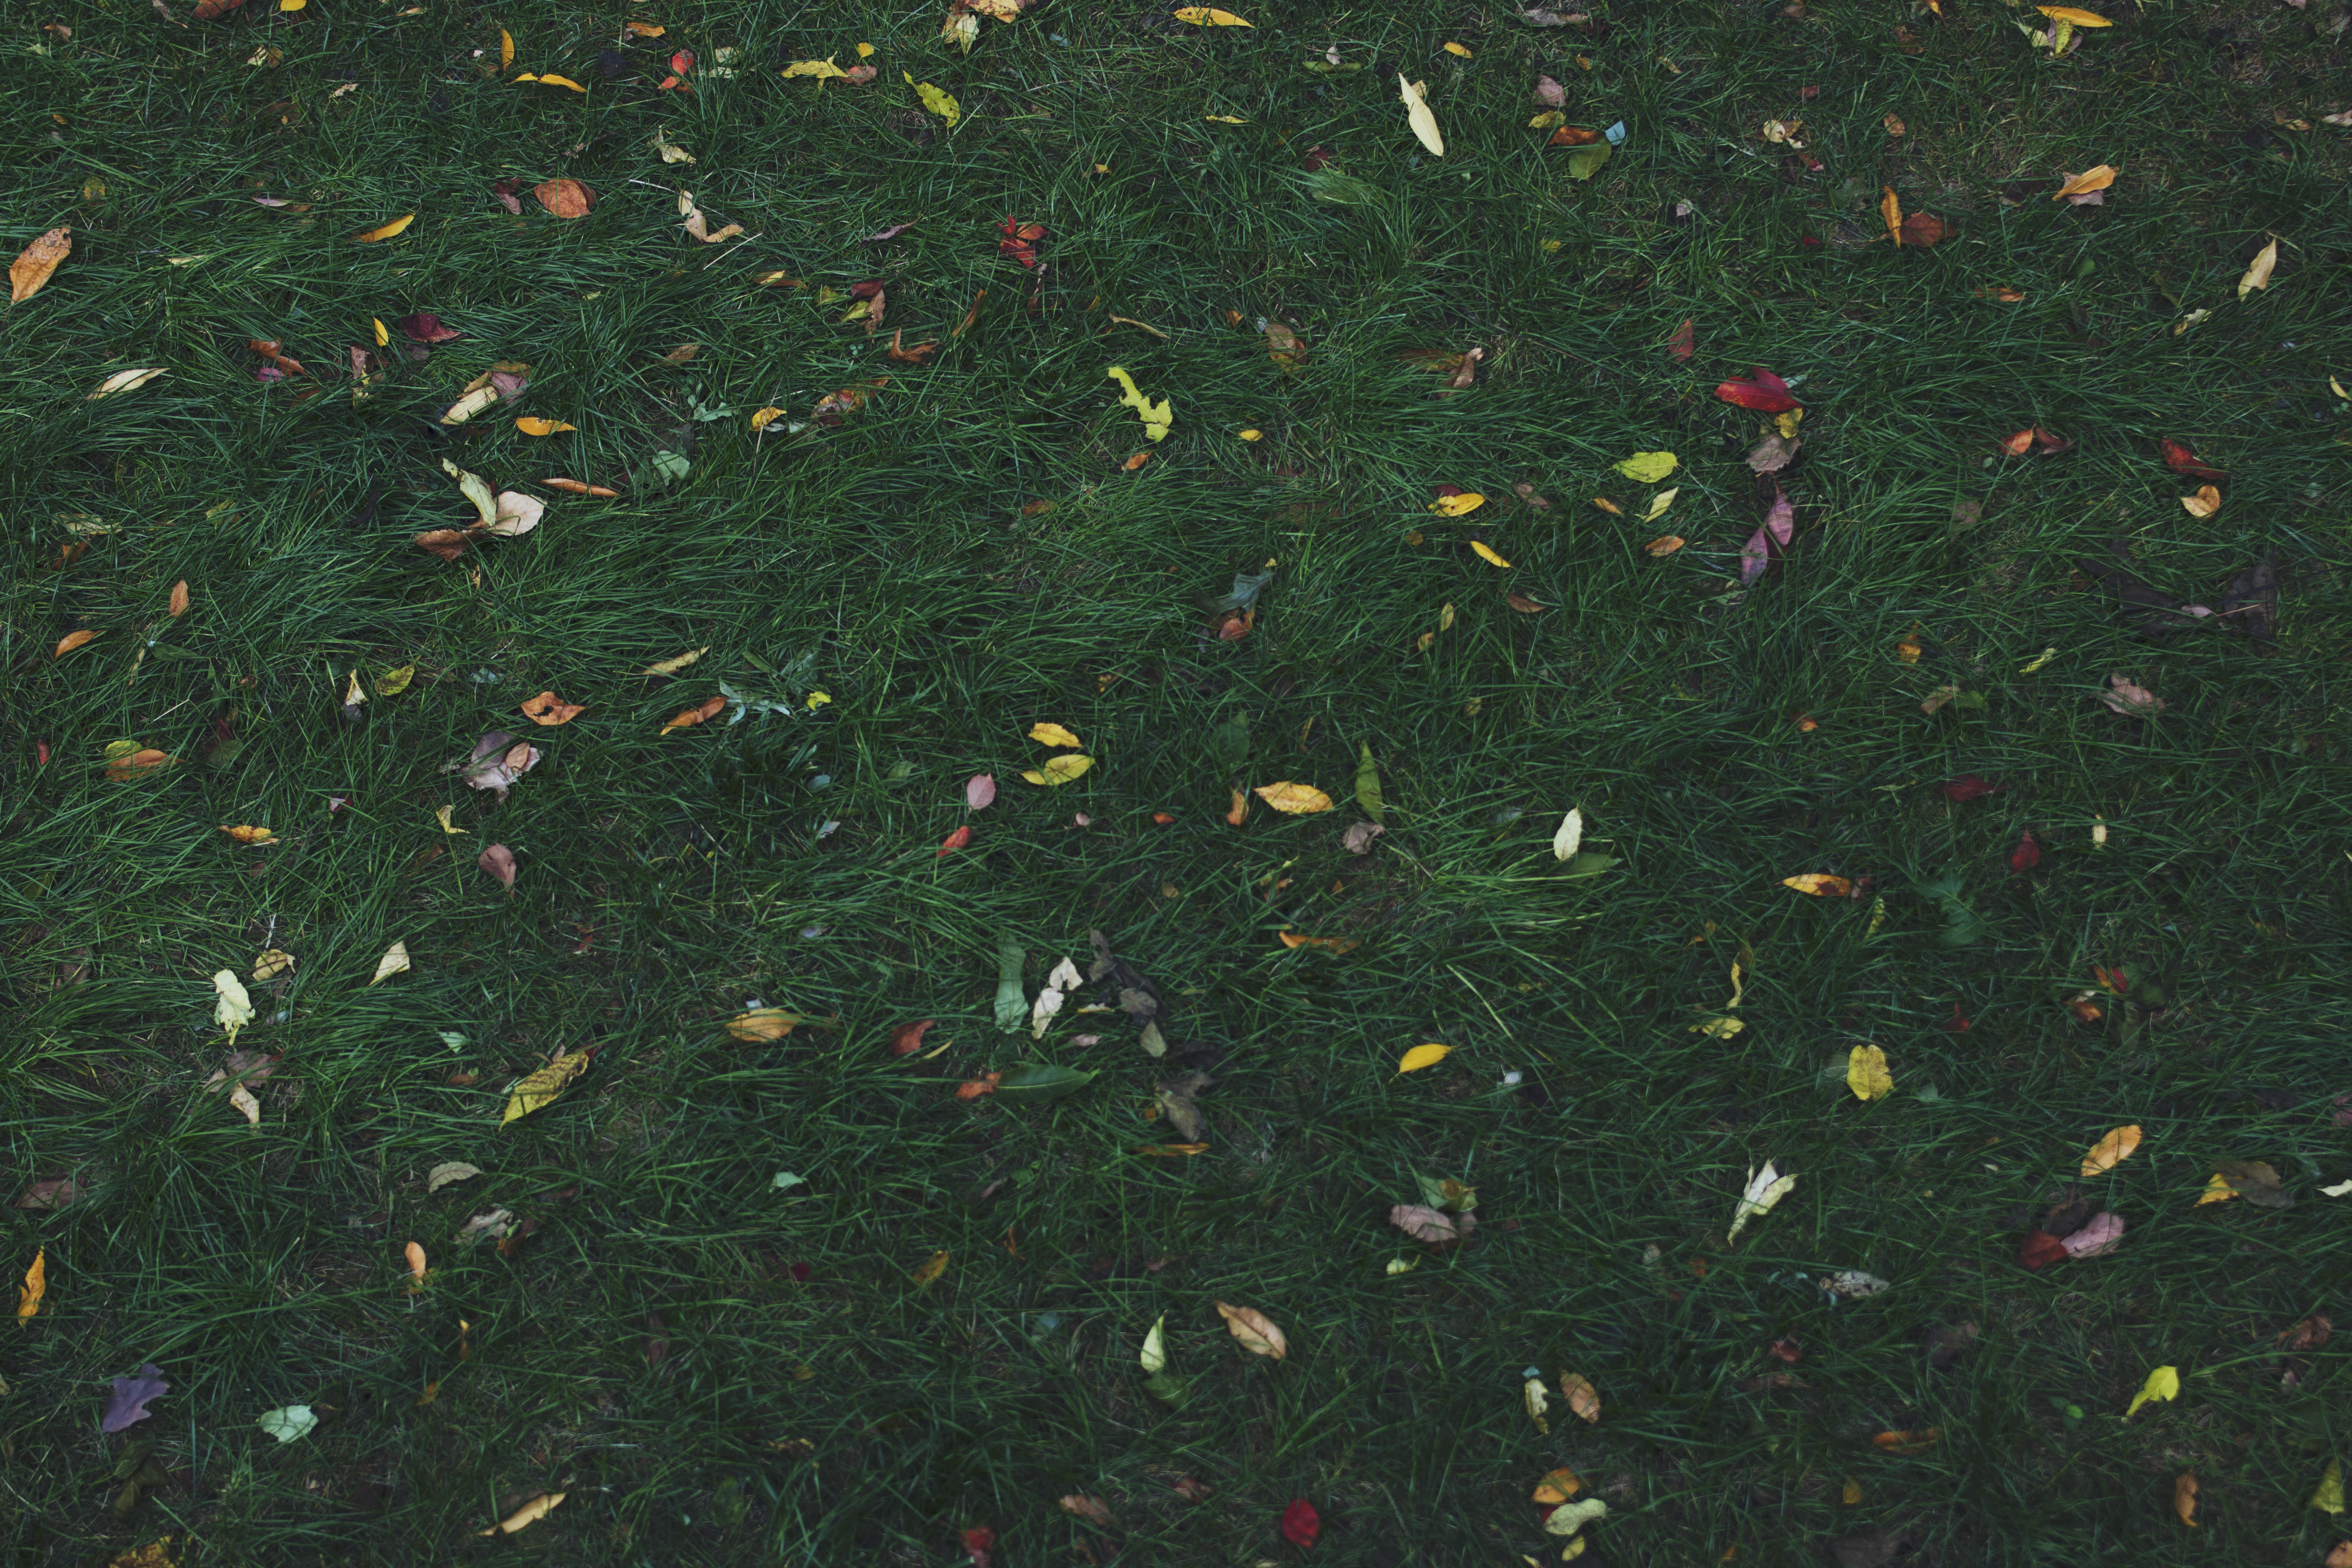 assorted-color leaves on green grass at daytime